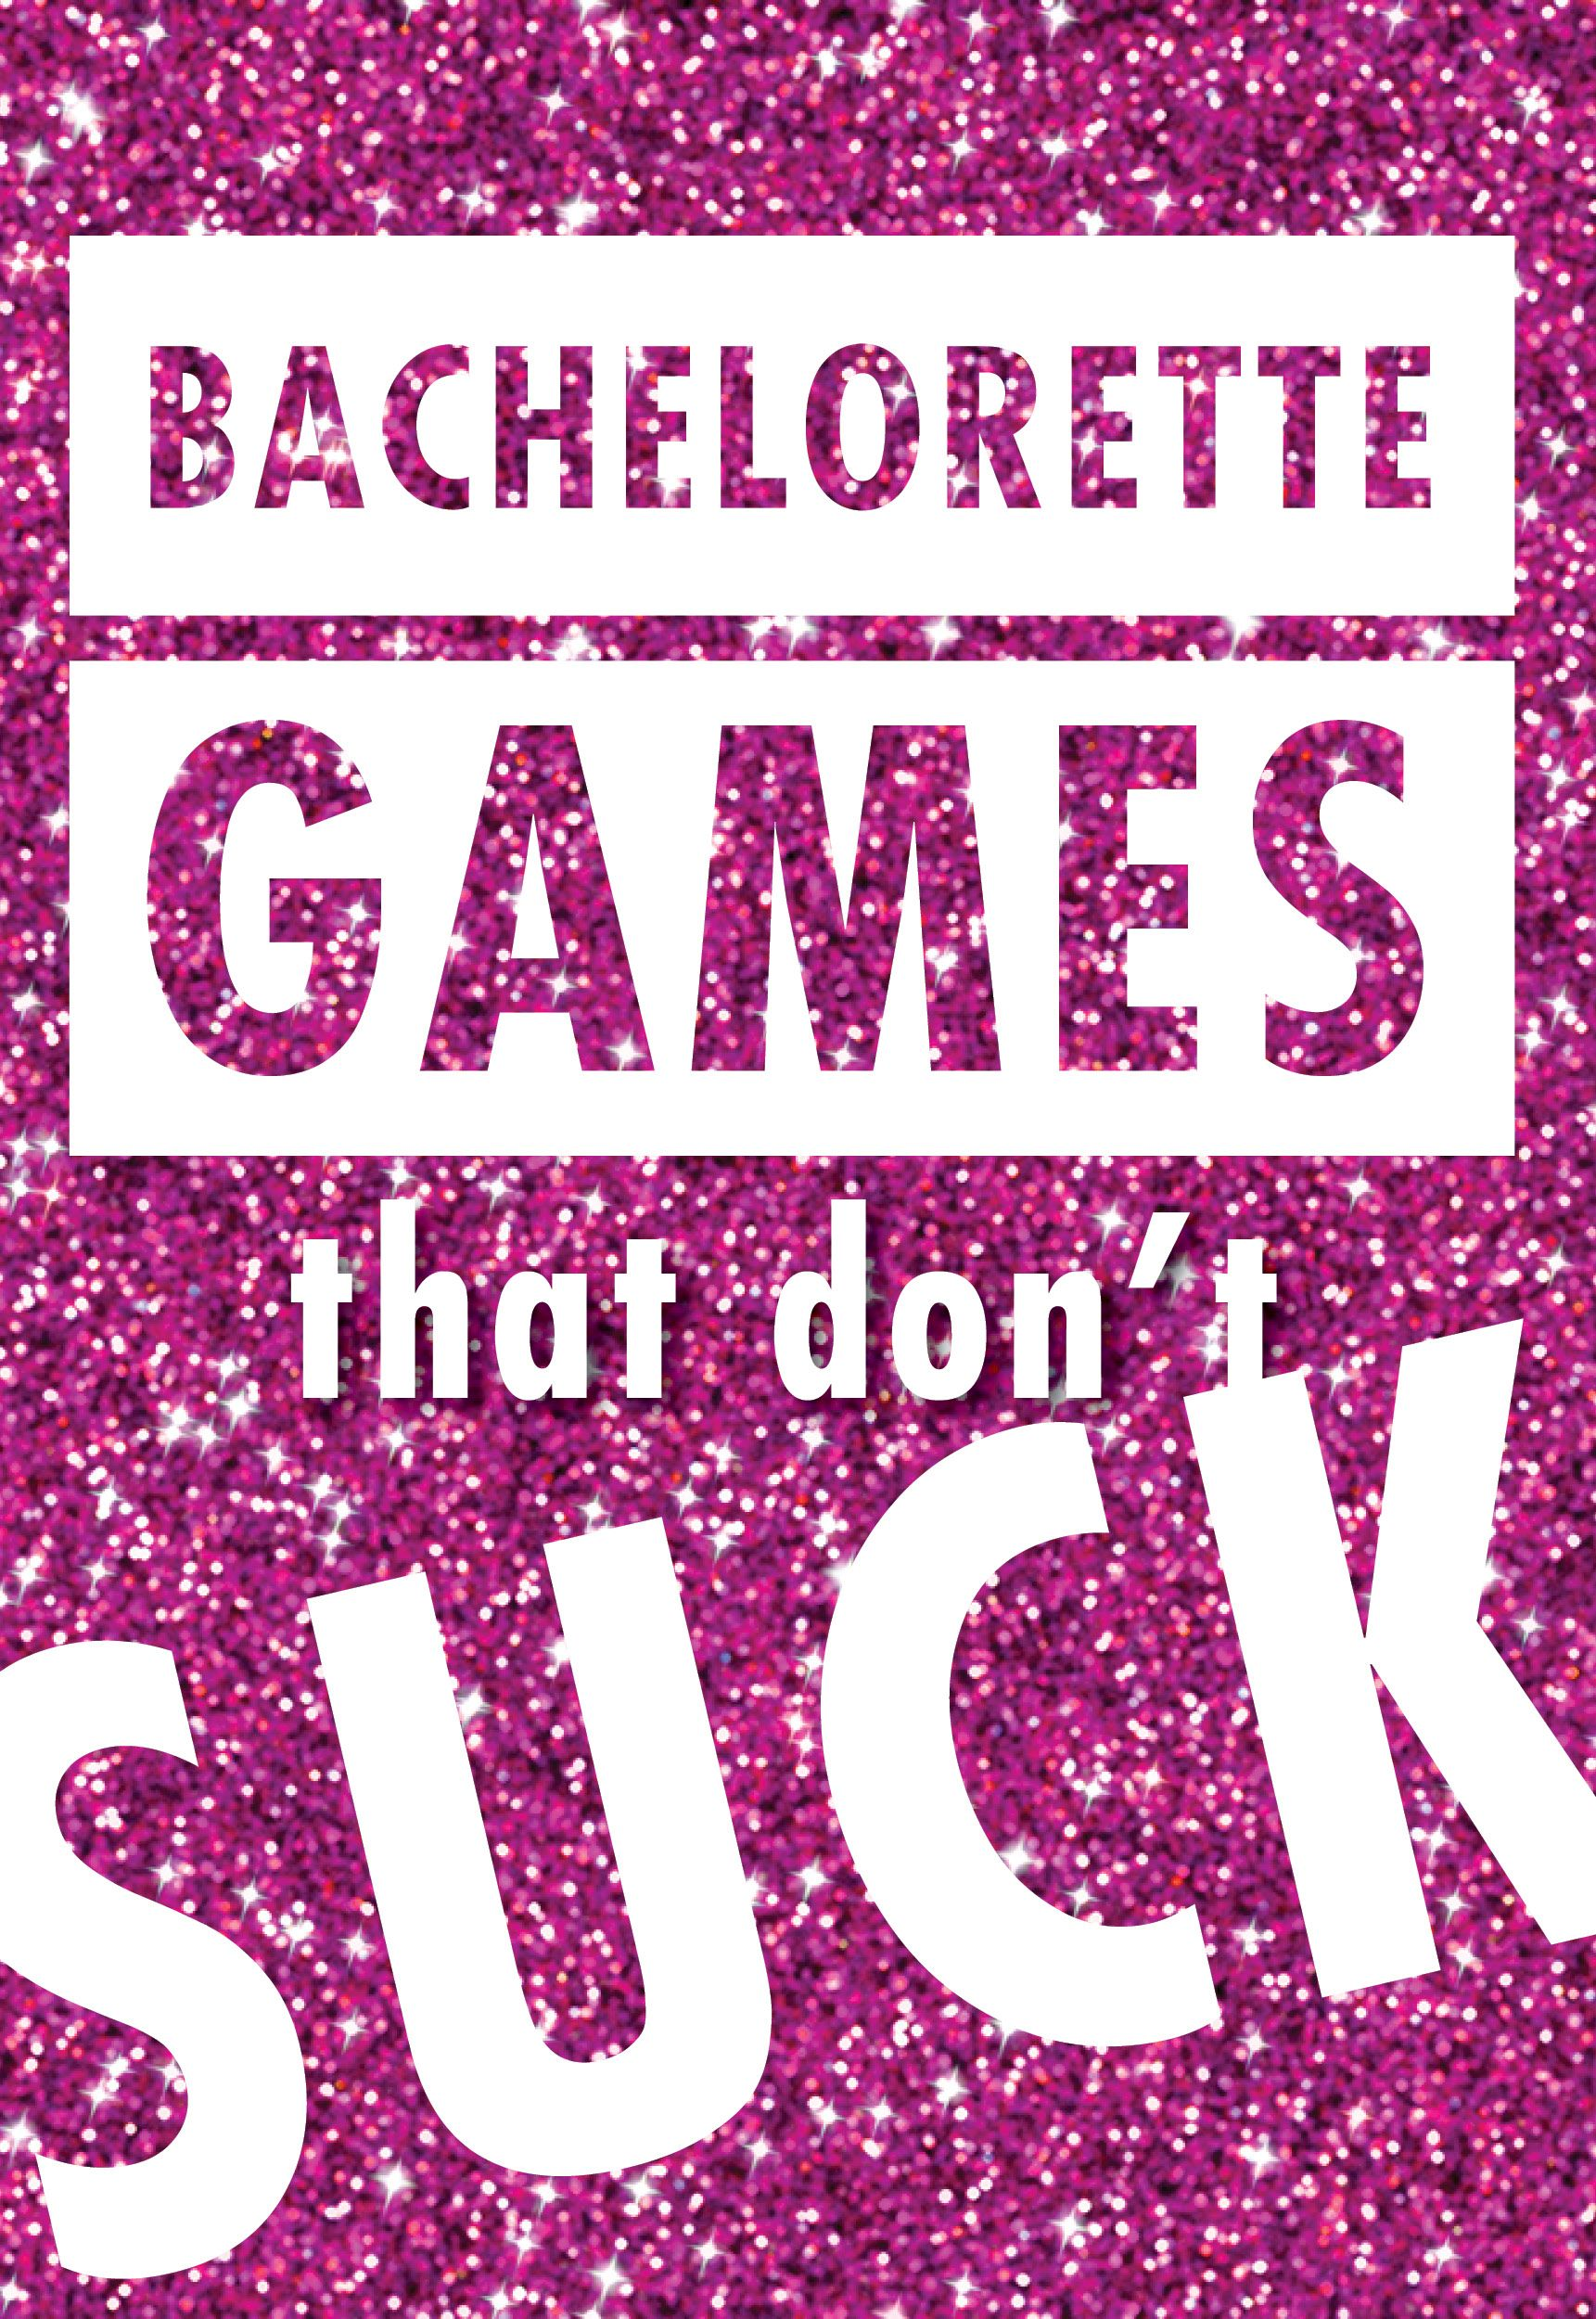 8 fun bachelorette party games the bride will actually want to play